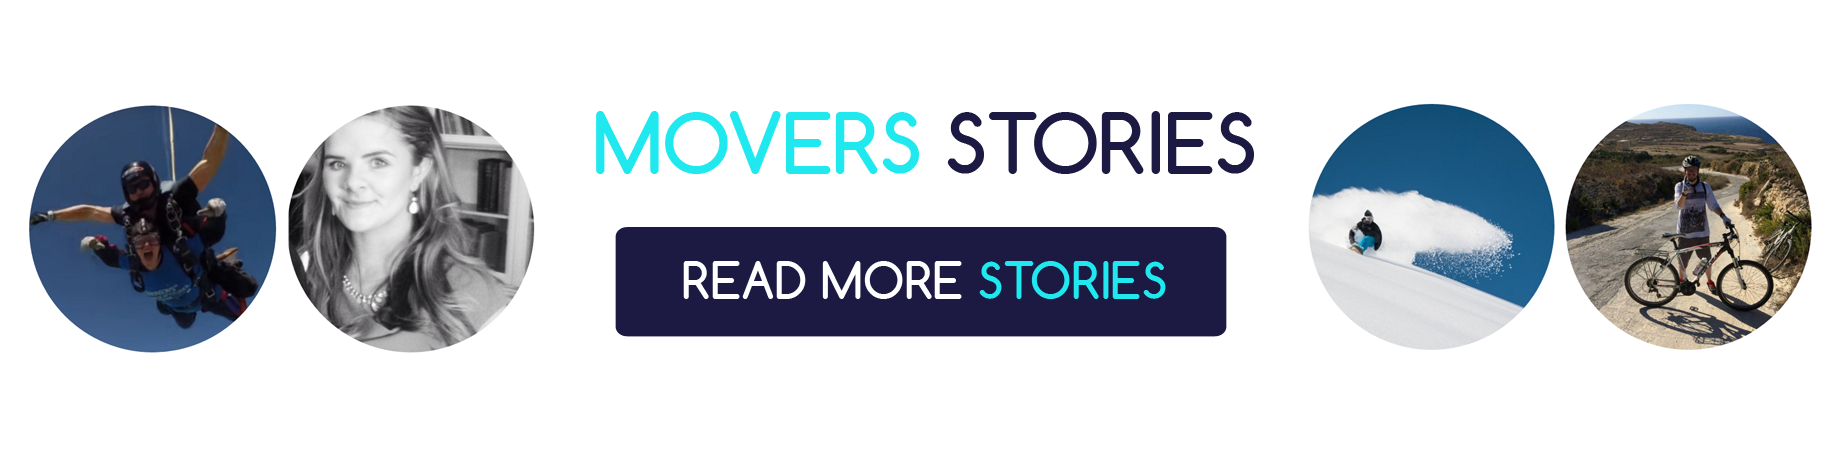 Movers_stories_button